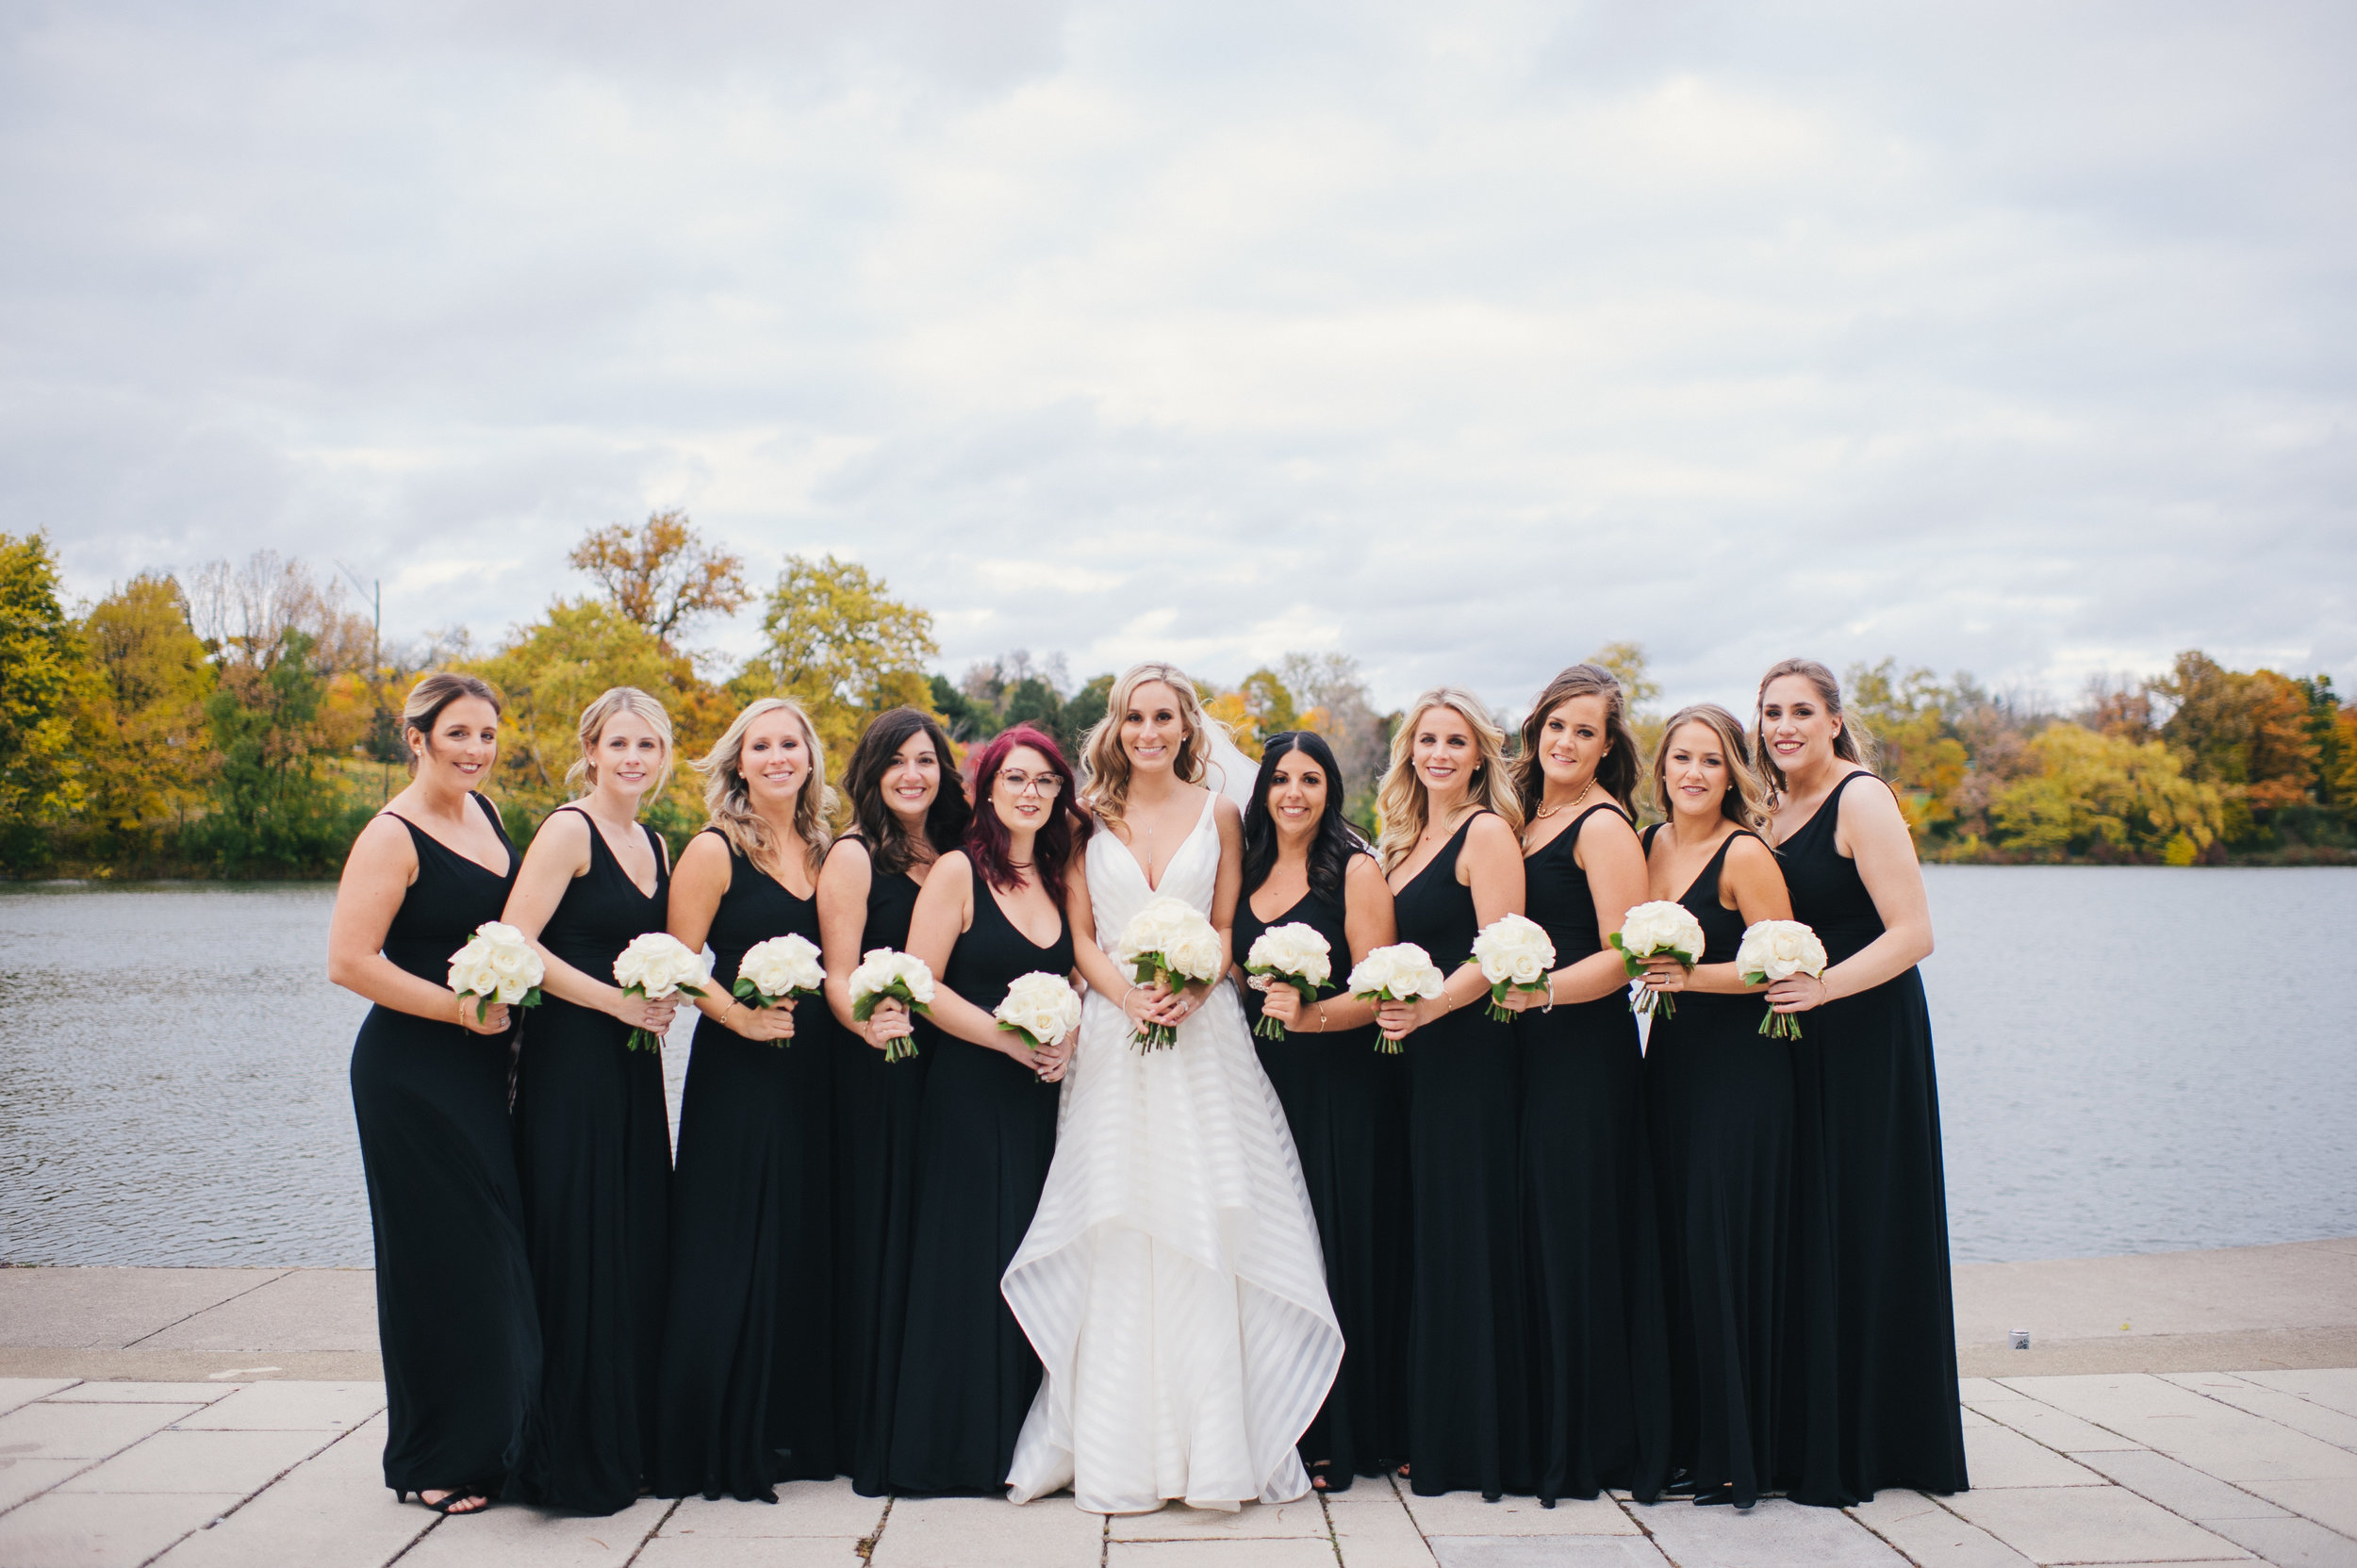 Black bridesmaids dresses and white wedding bouquets for black, white, and gold wedding in Buffalo, NY planned by Exhale Events. Find more wedding inspiration at exhale-events.com!